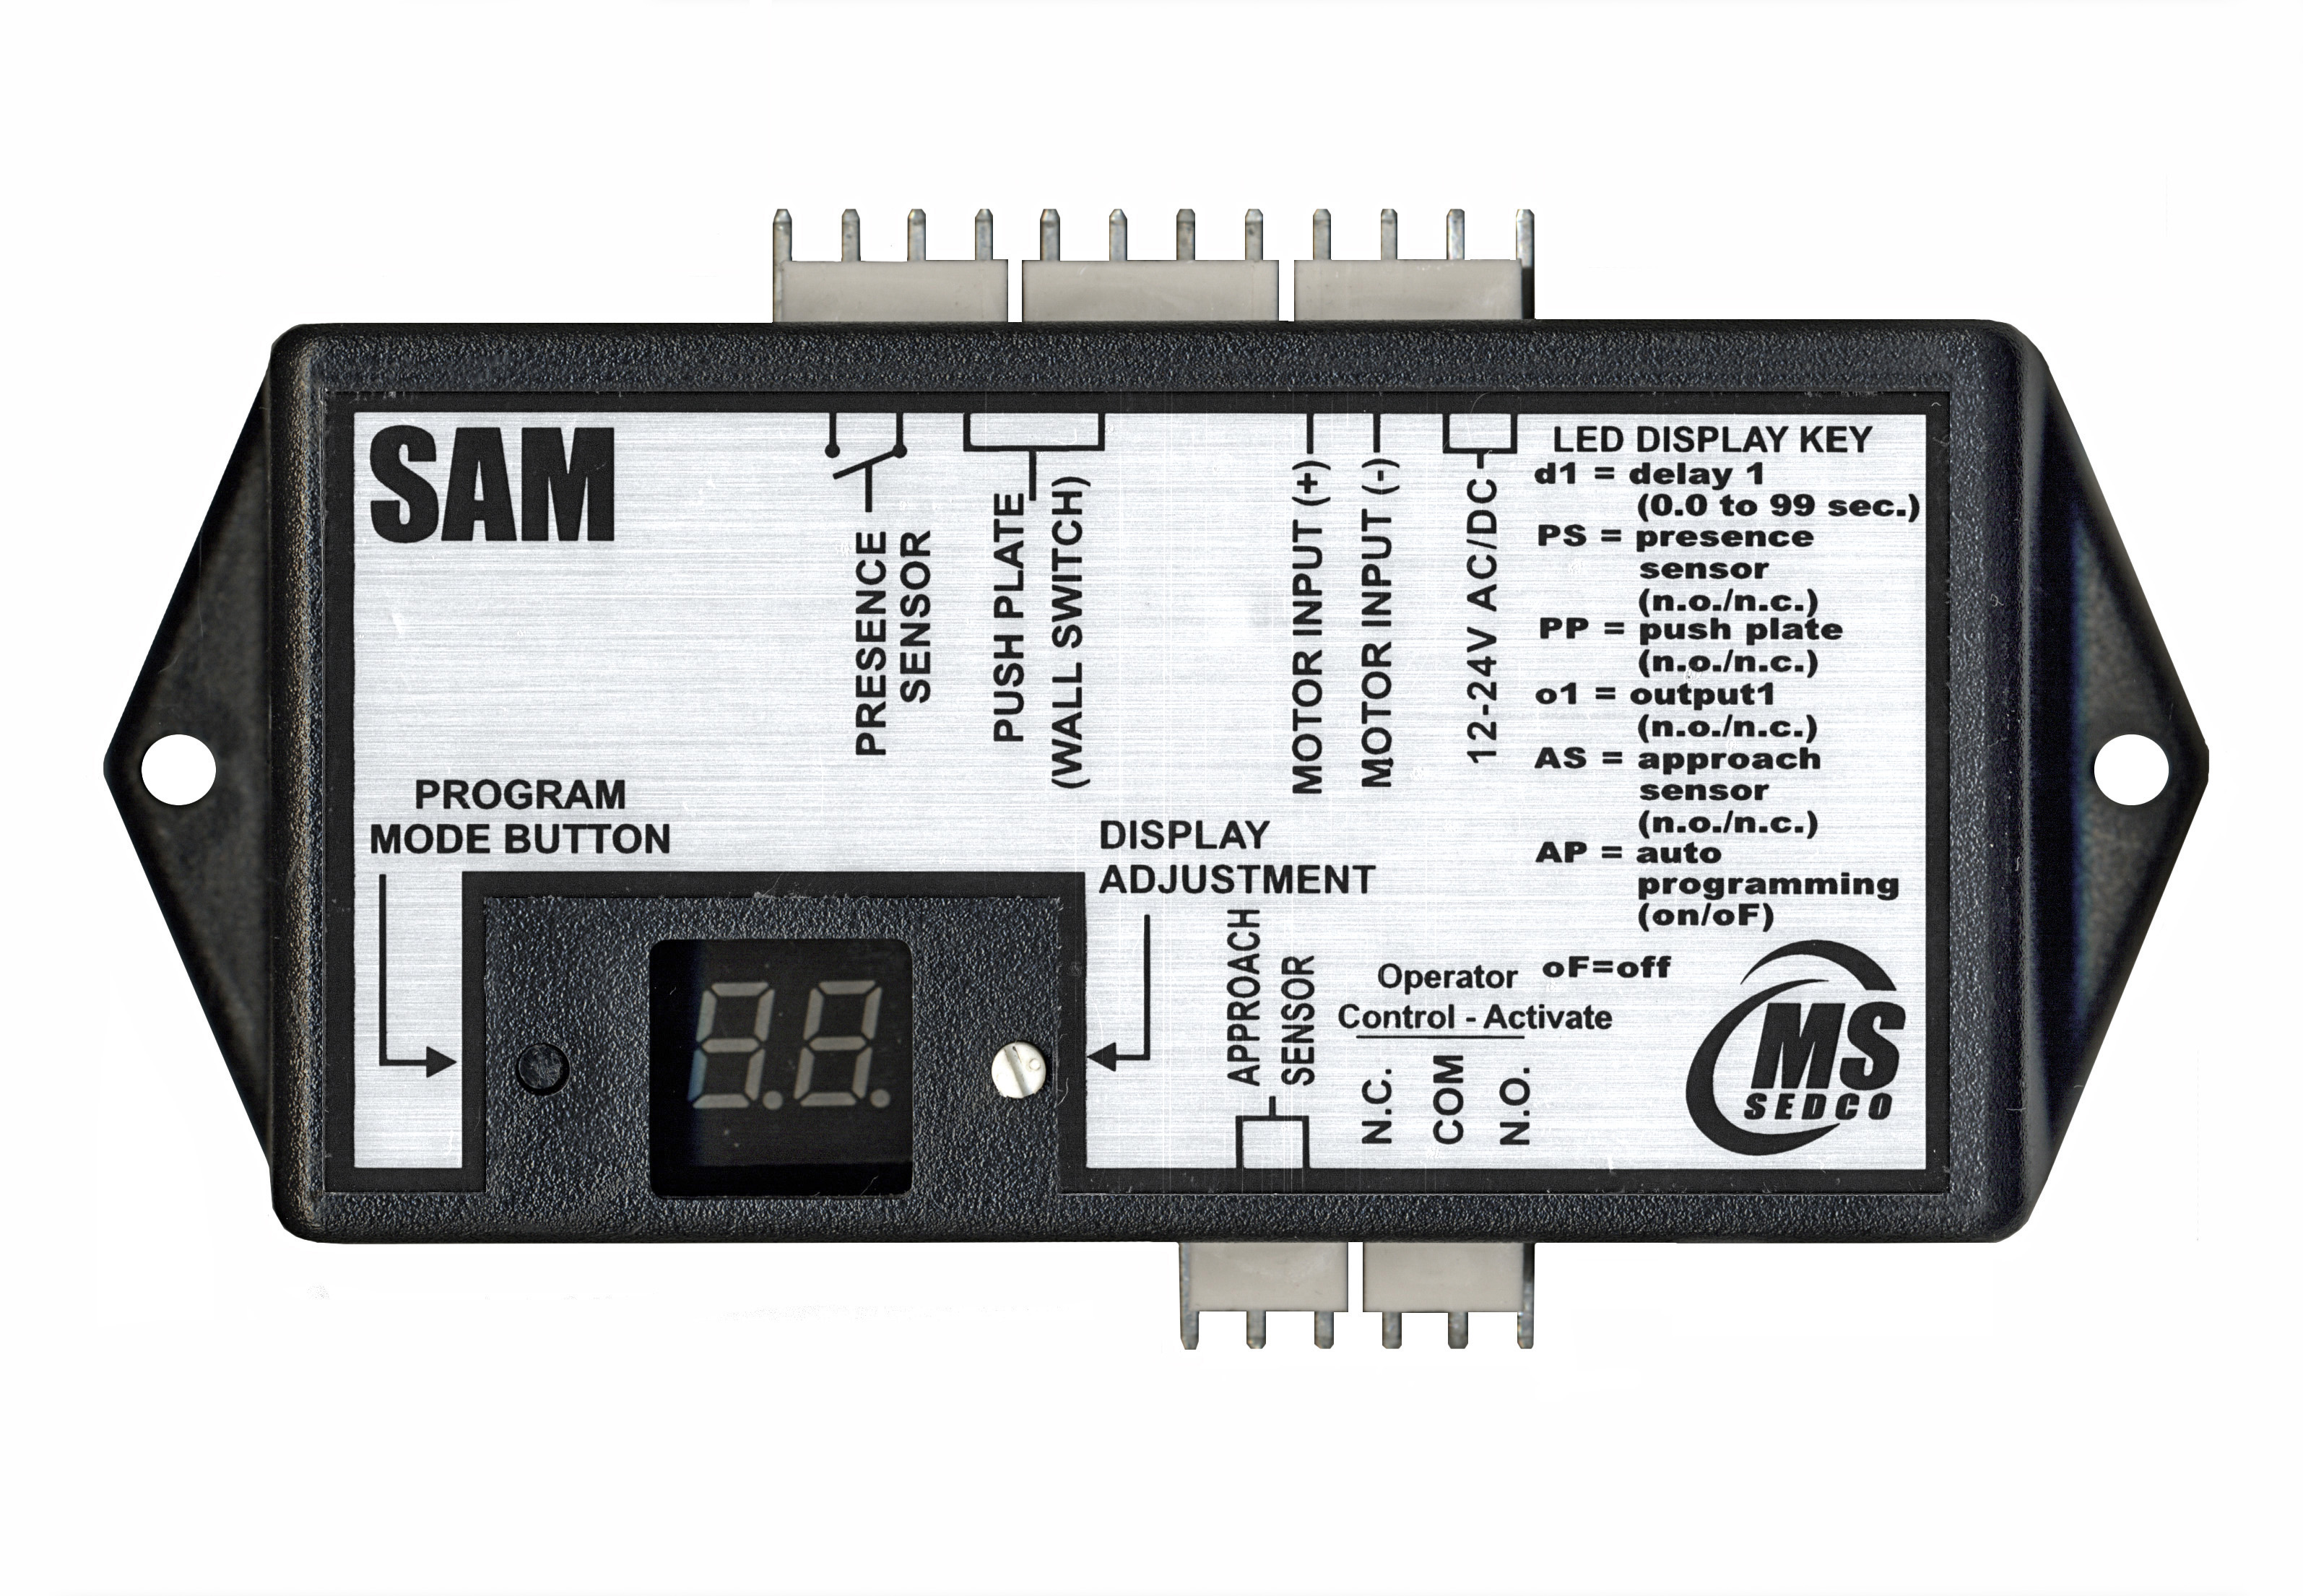 SAM Secondary Activation Module